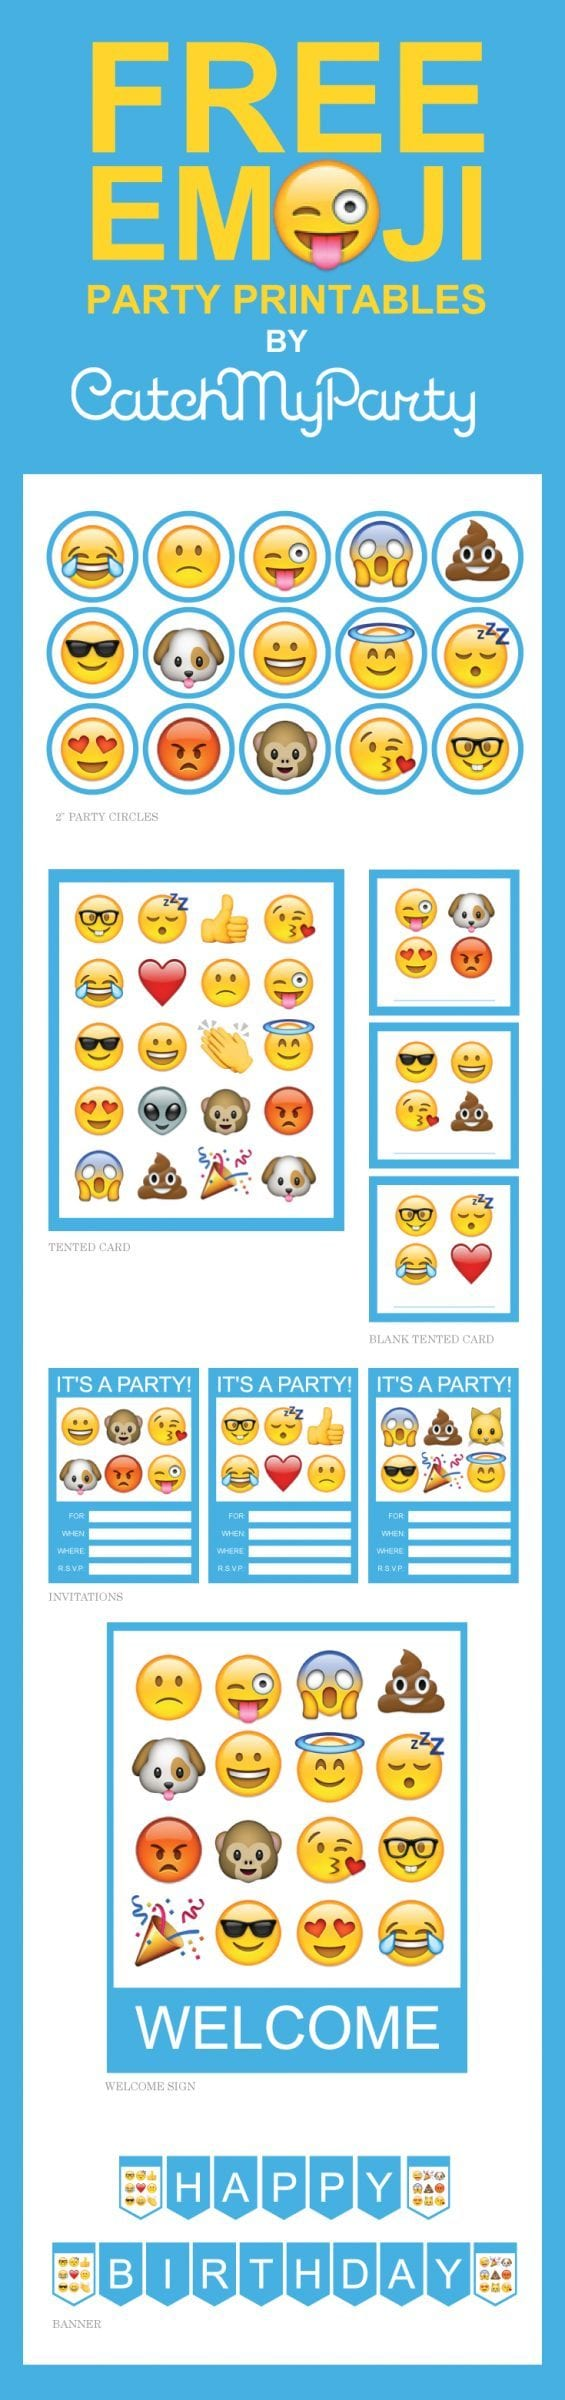 Free Emoji Party Printables | CatchMyParty.com